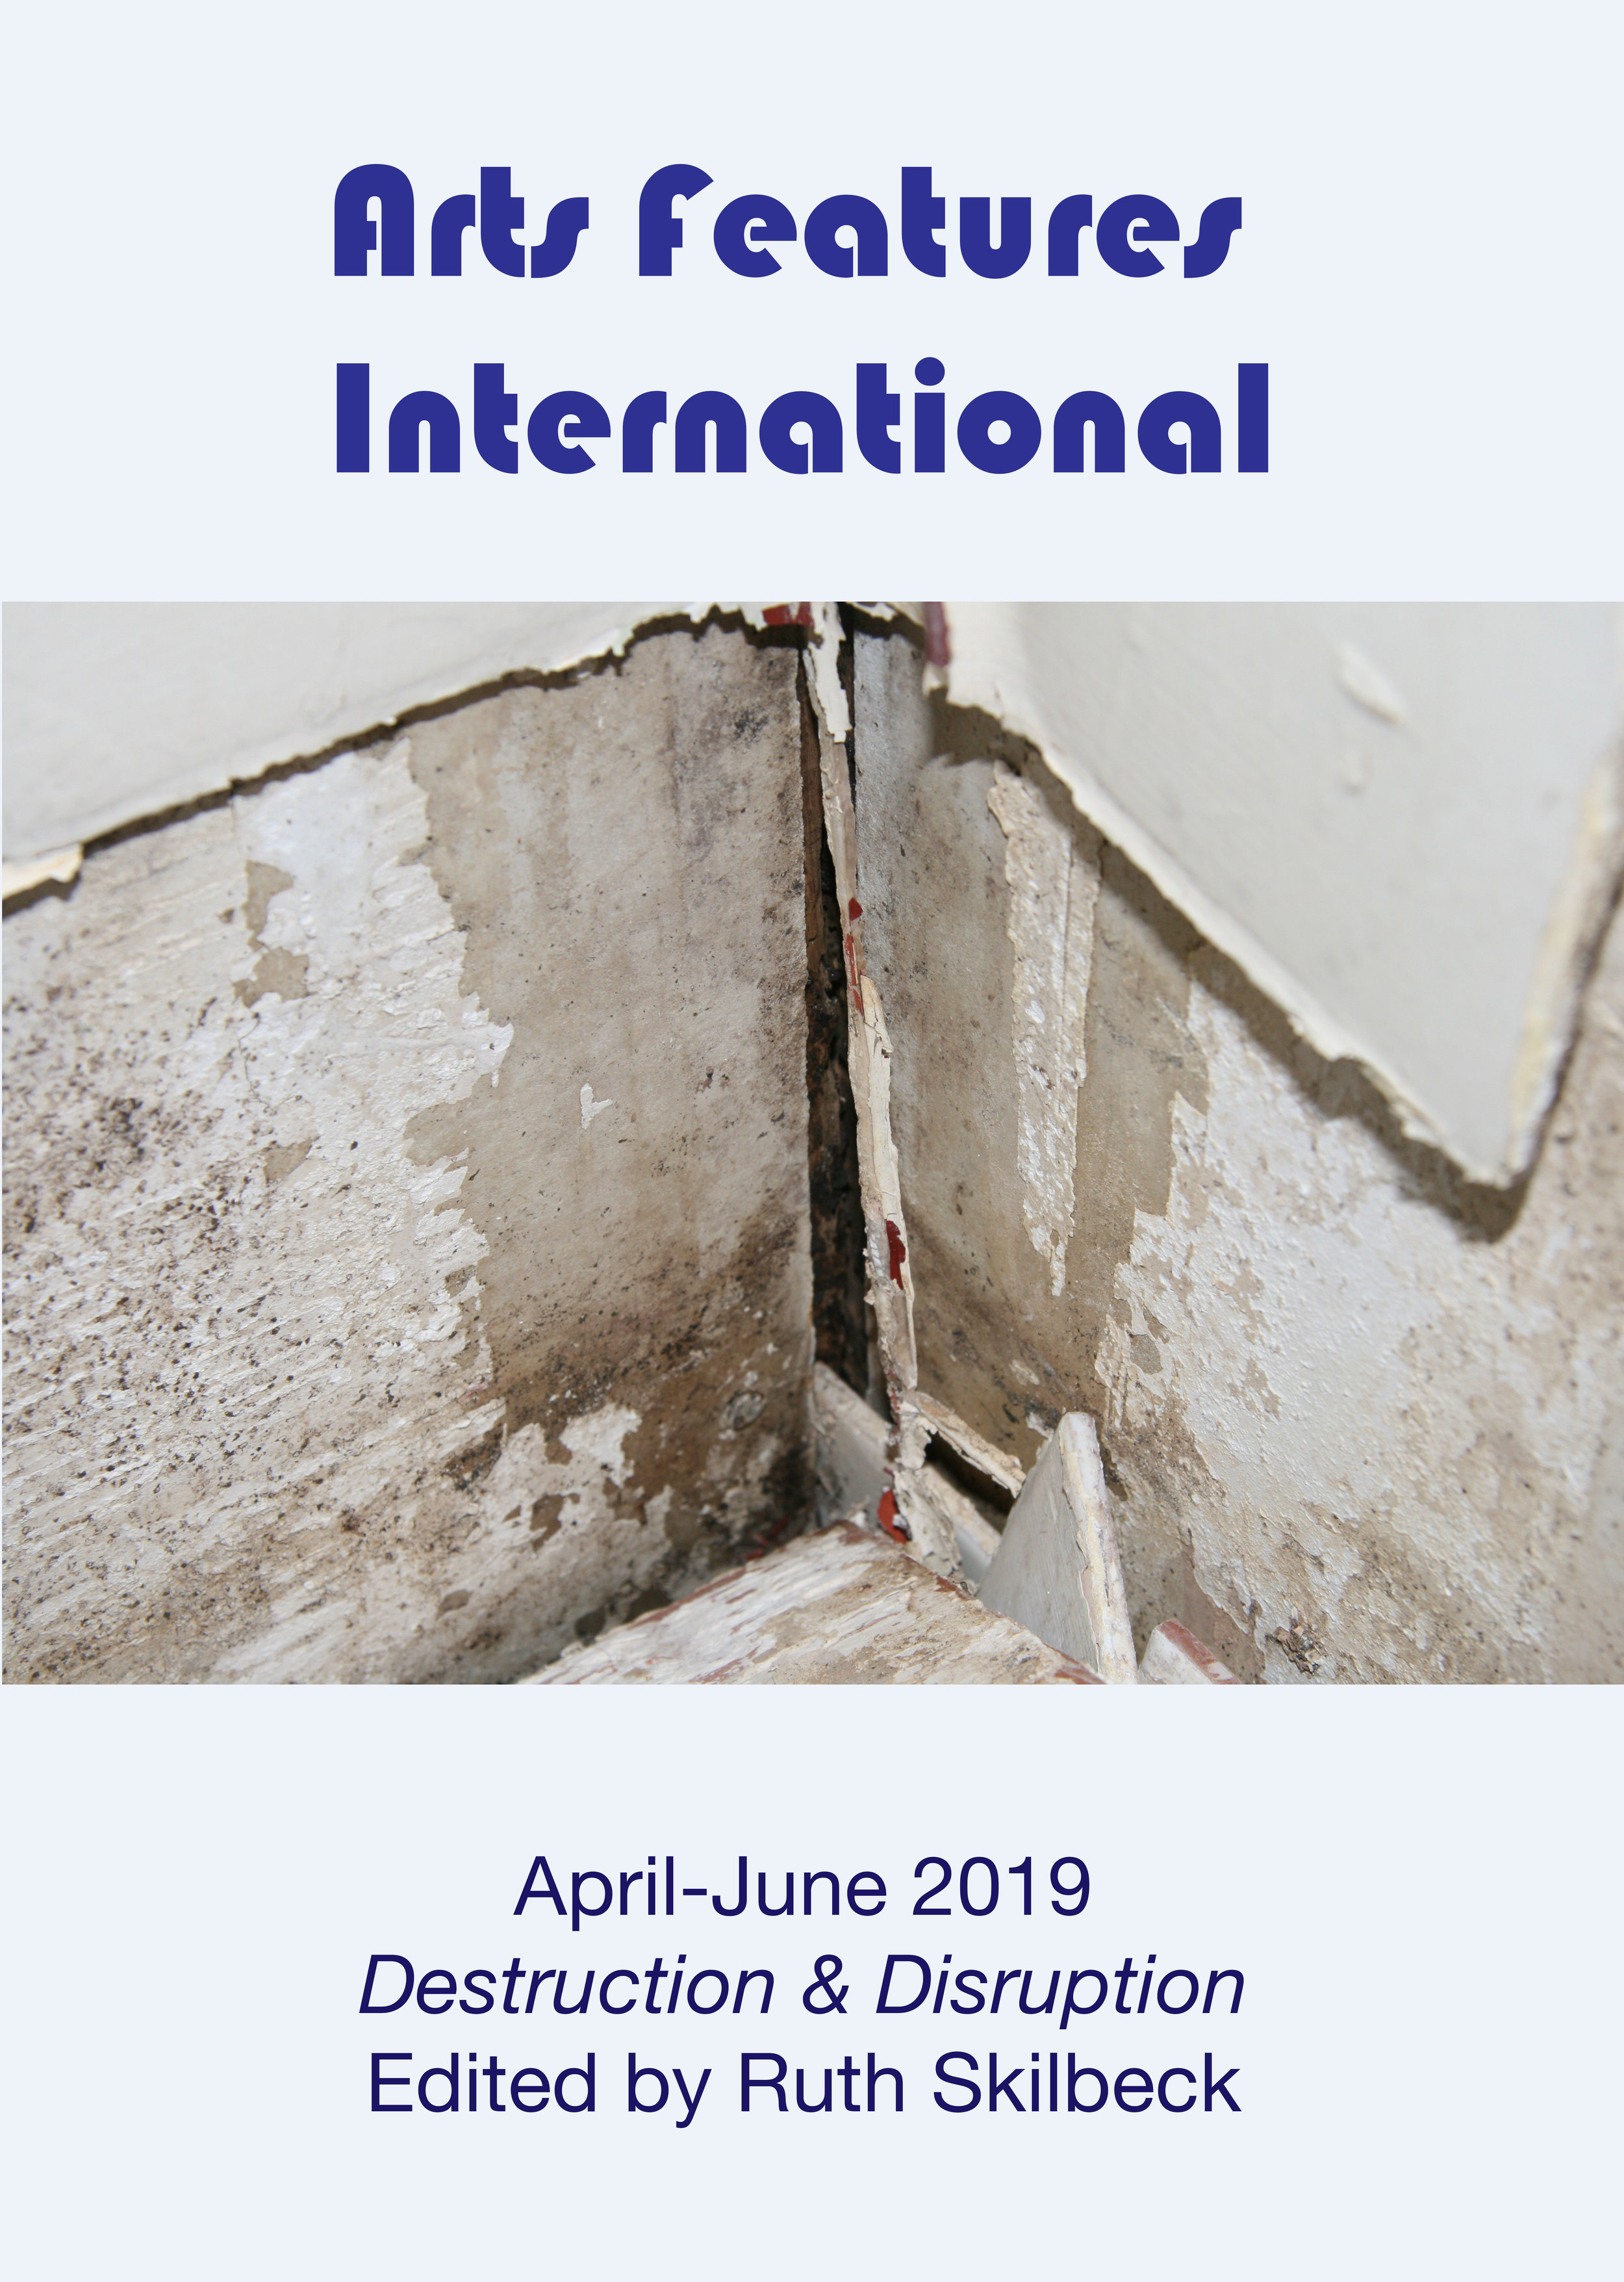 Arts Features International, April-June 2019 Destruction & Disruption (Issue 3) Out now on Borderstream Books website - https://www.borderstreambooks.com.au/shop/arts-features-international-april-june-2019-destruction-and-disruption-edited-by-ruth-skilbeck